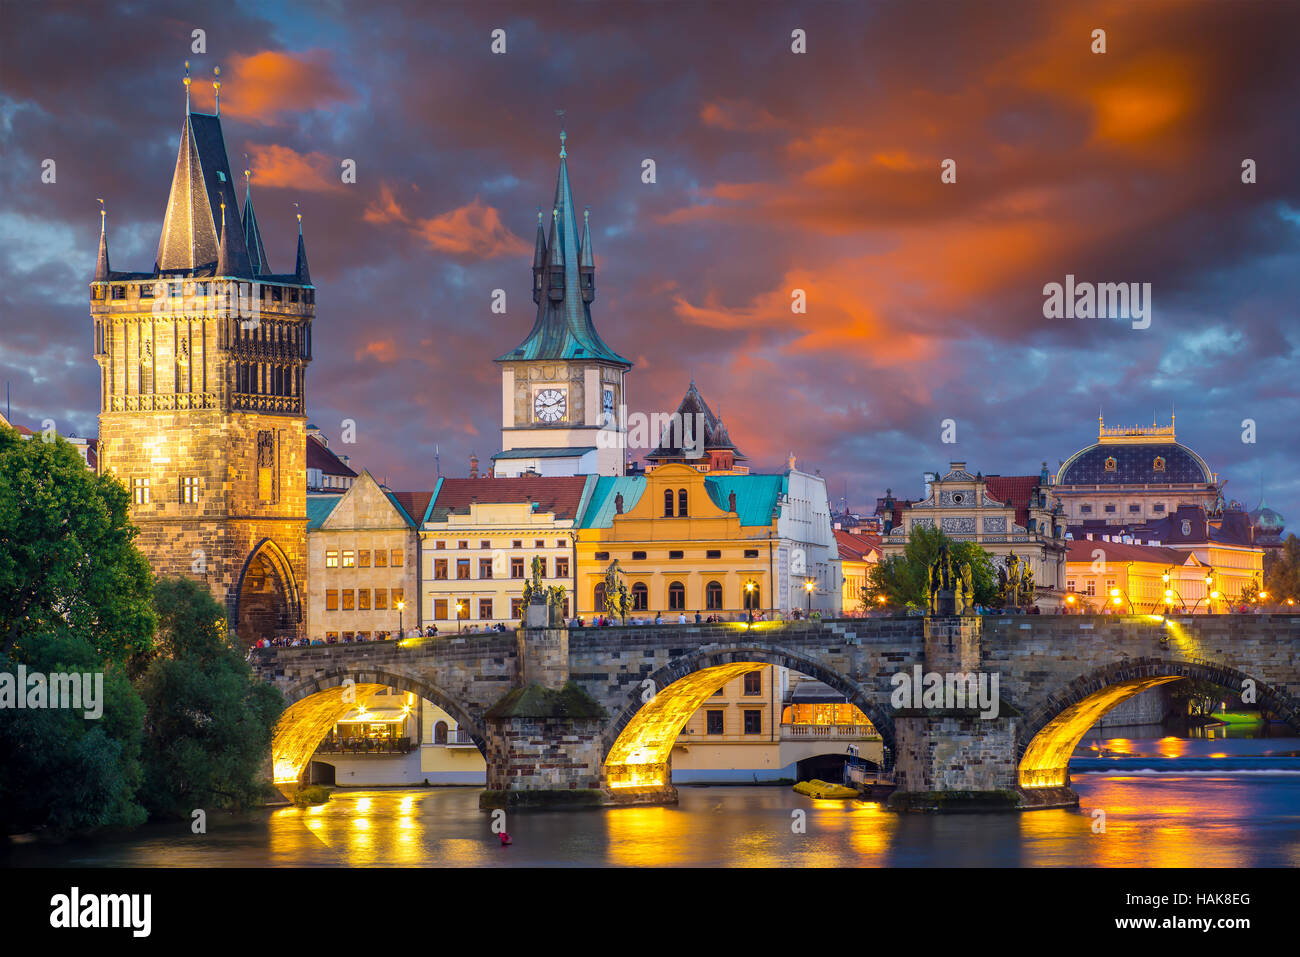 Vibrant stormy sunset sky over the River Vltava and Charles Bridge Prague Czech Republic Europe - Stock Image